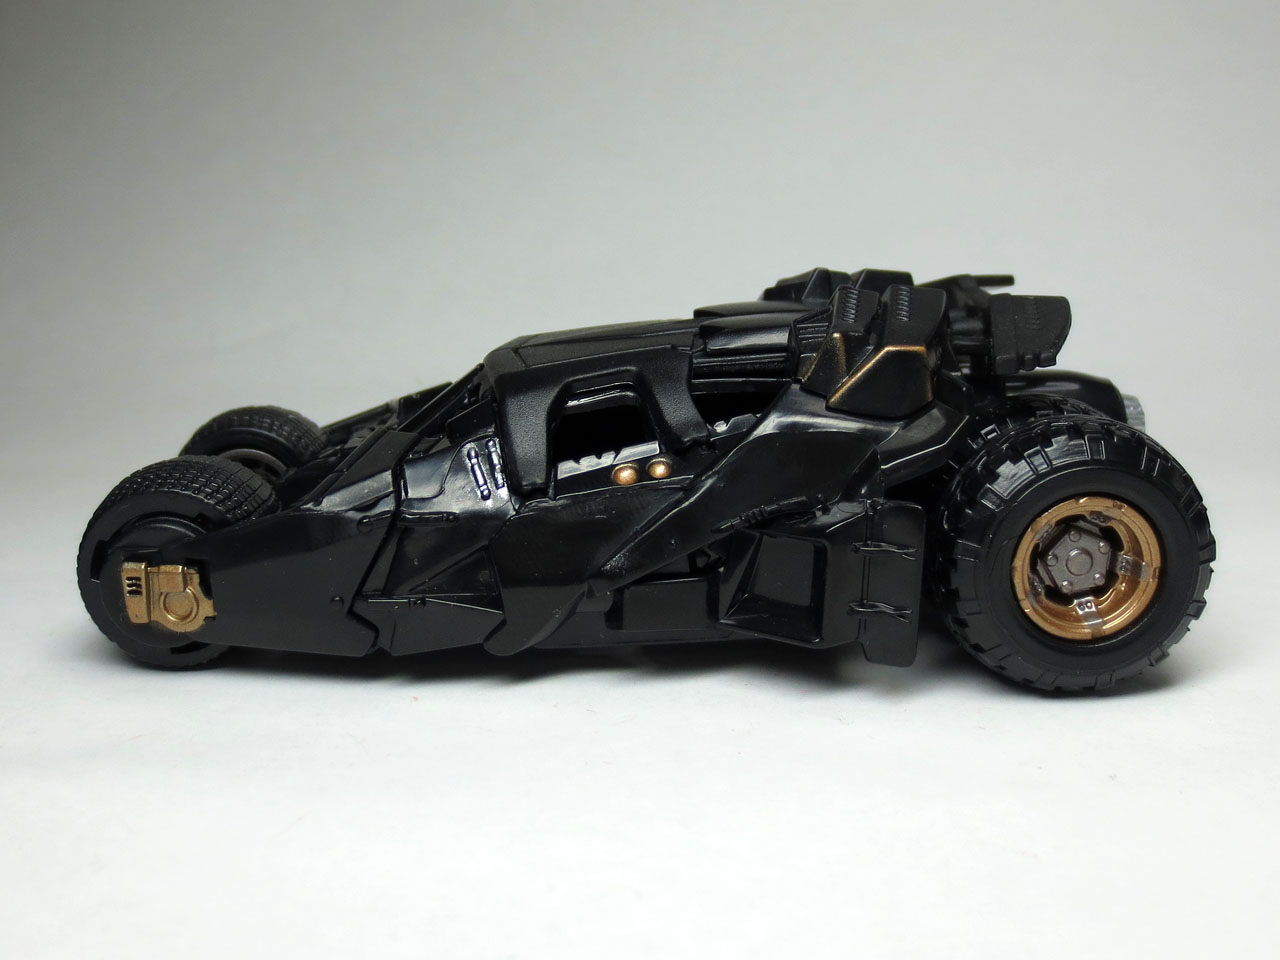 HW_custom_motors_batmobile_4th_10.jpg